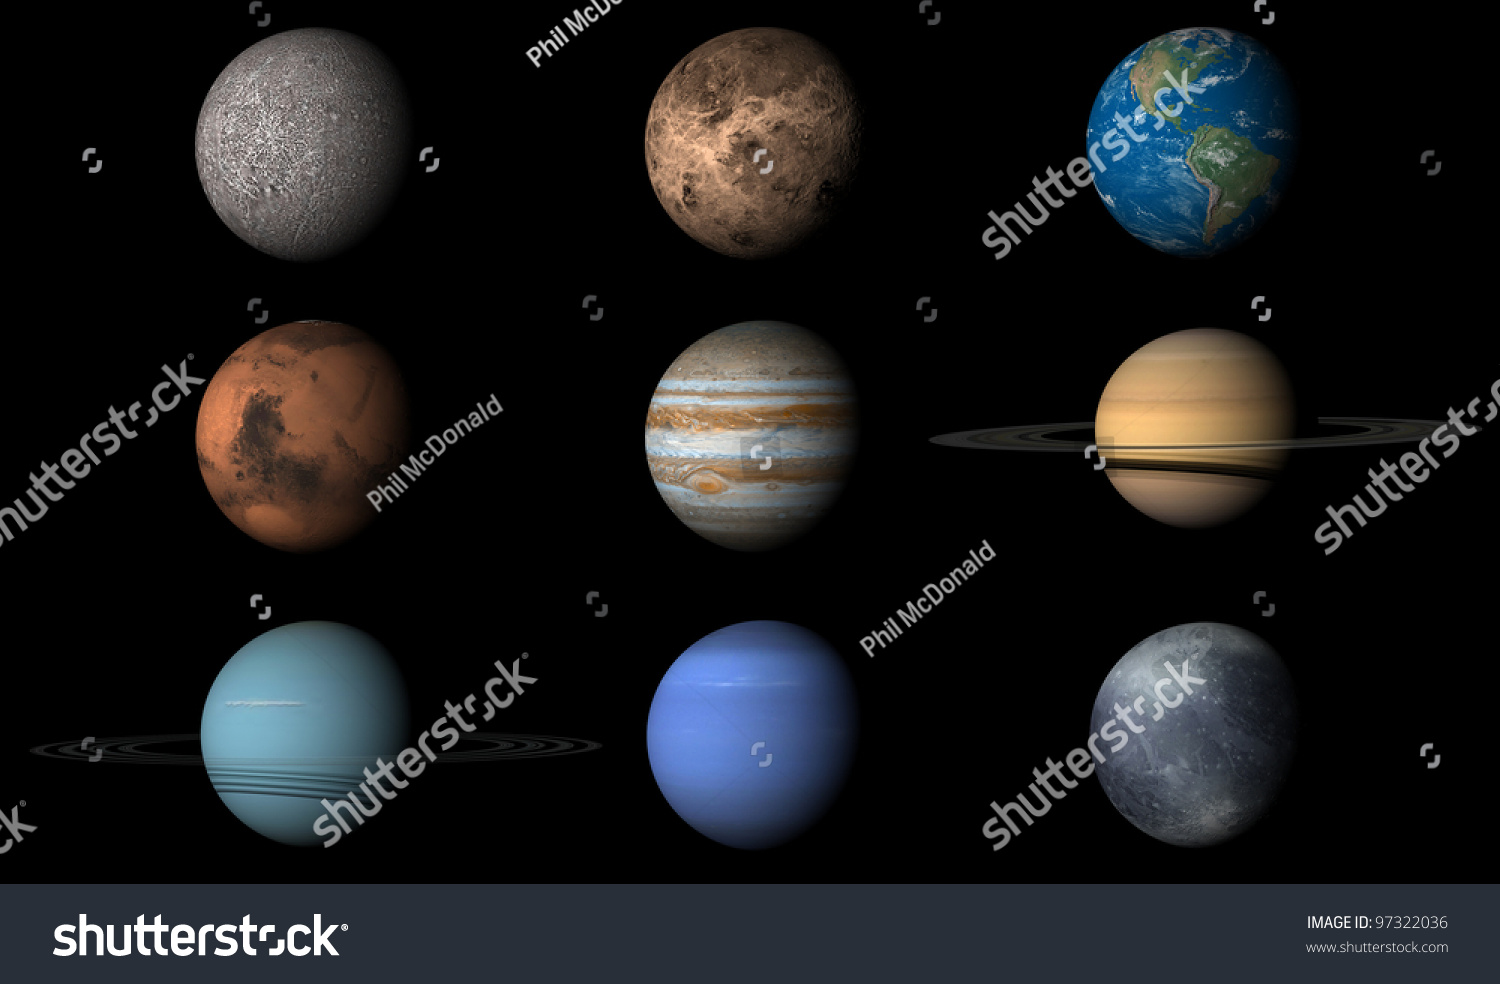 our solar system planets in order with no pluto - photo #22